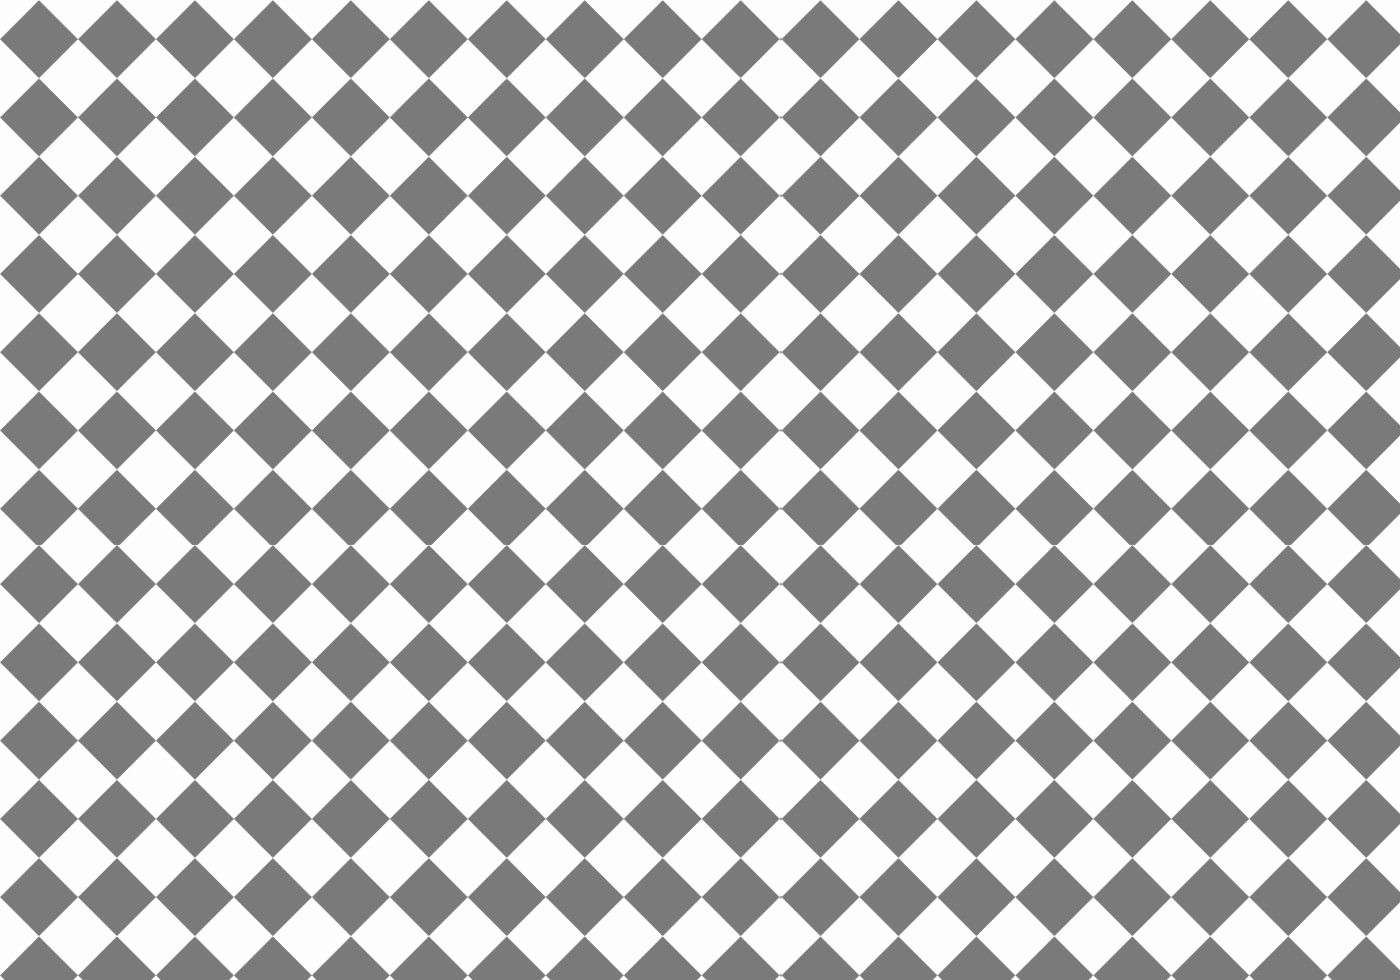 Pictures Of A Checker Board Elegant Diagonal Checkered High Quality Free Shop Brushes